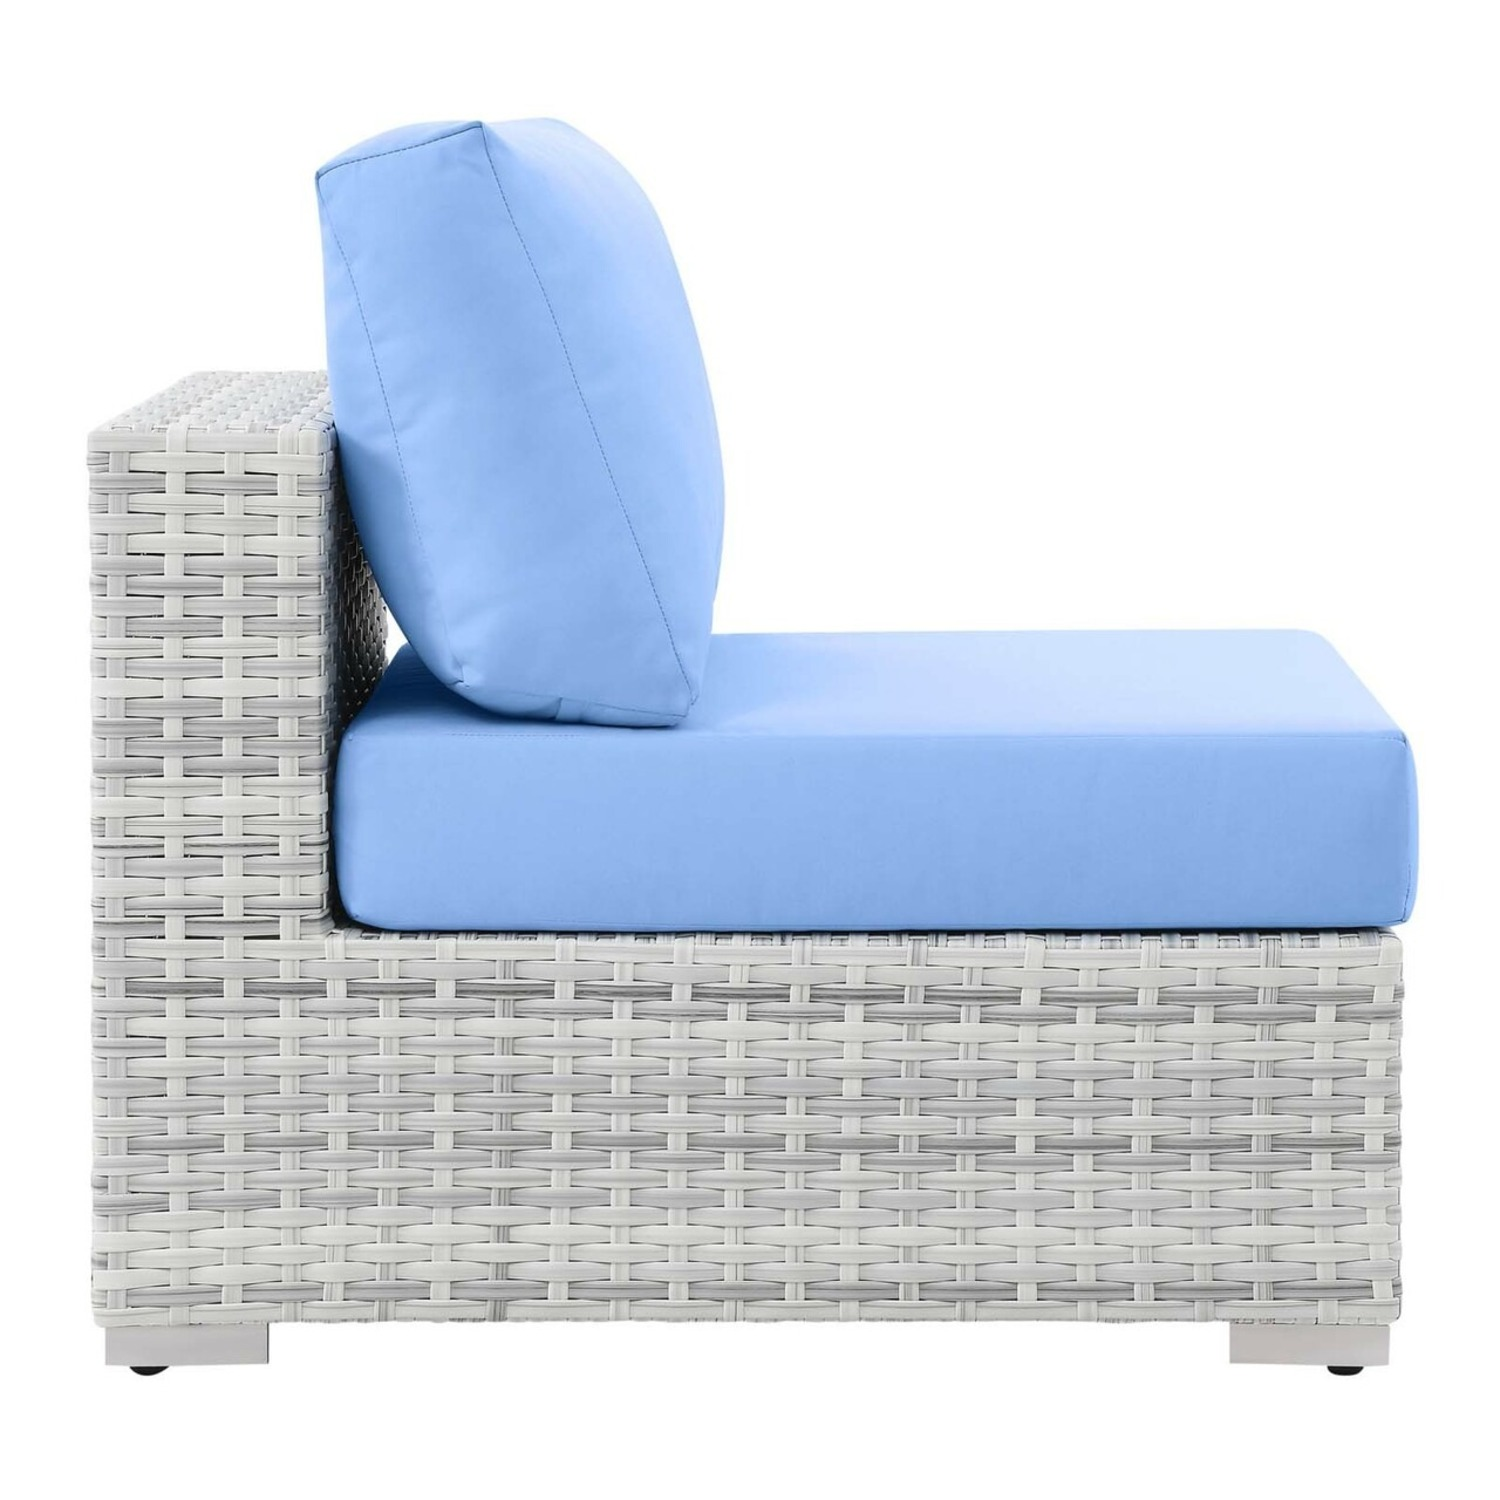 6-Piece Outdoor Patio Sectional In Light Blue Seat - image-3